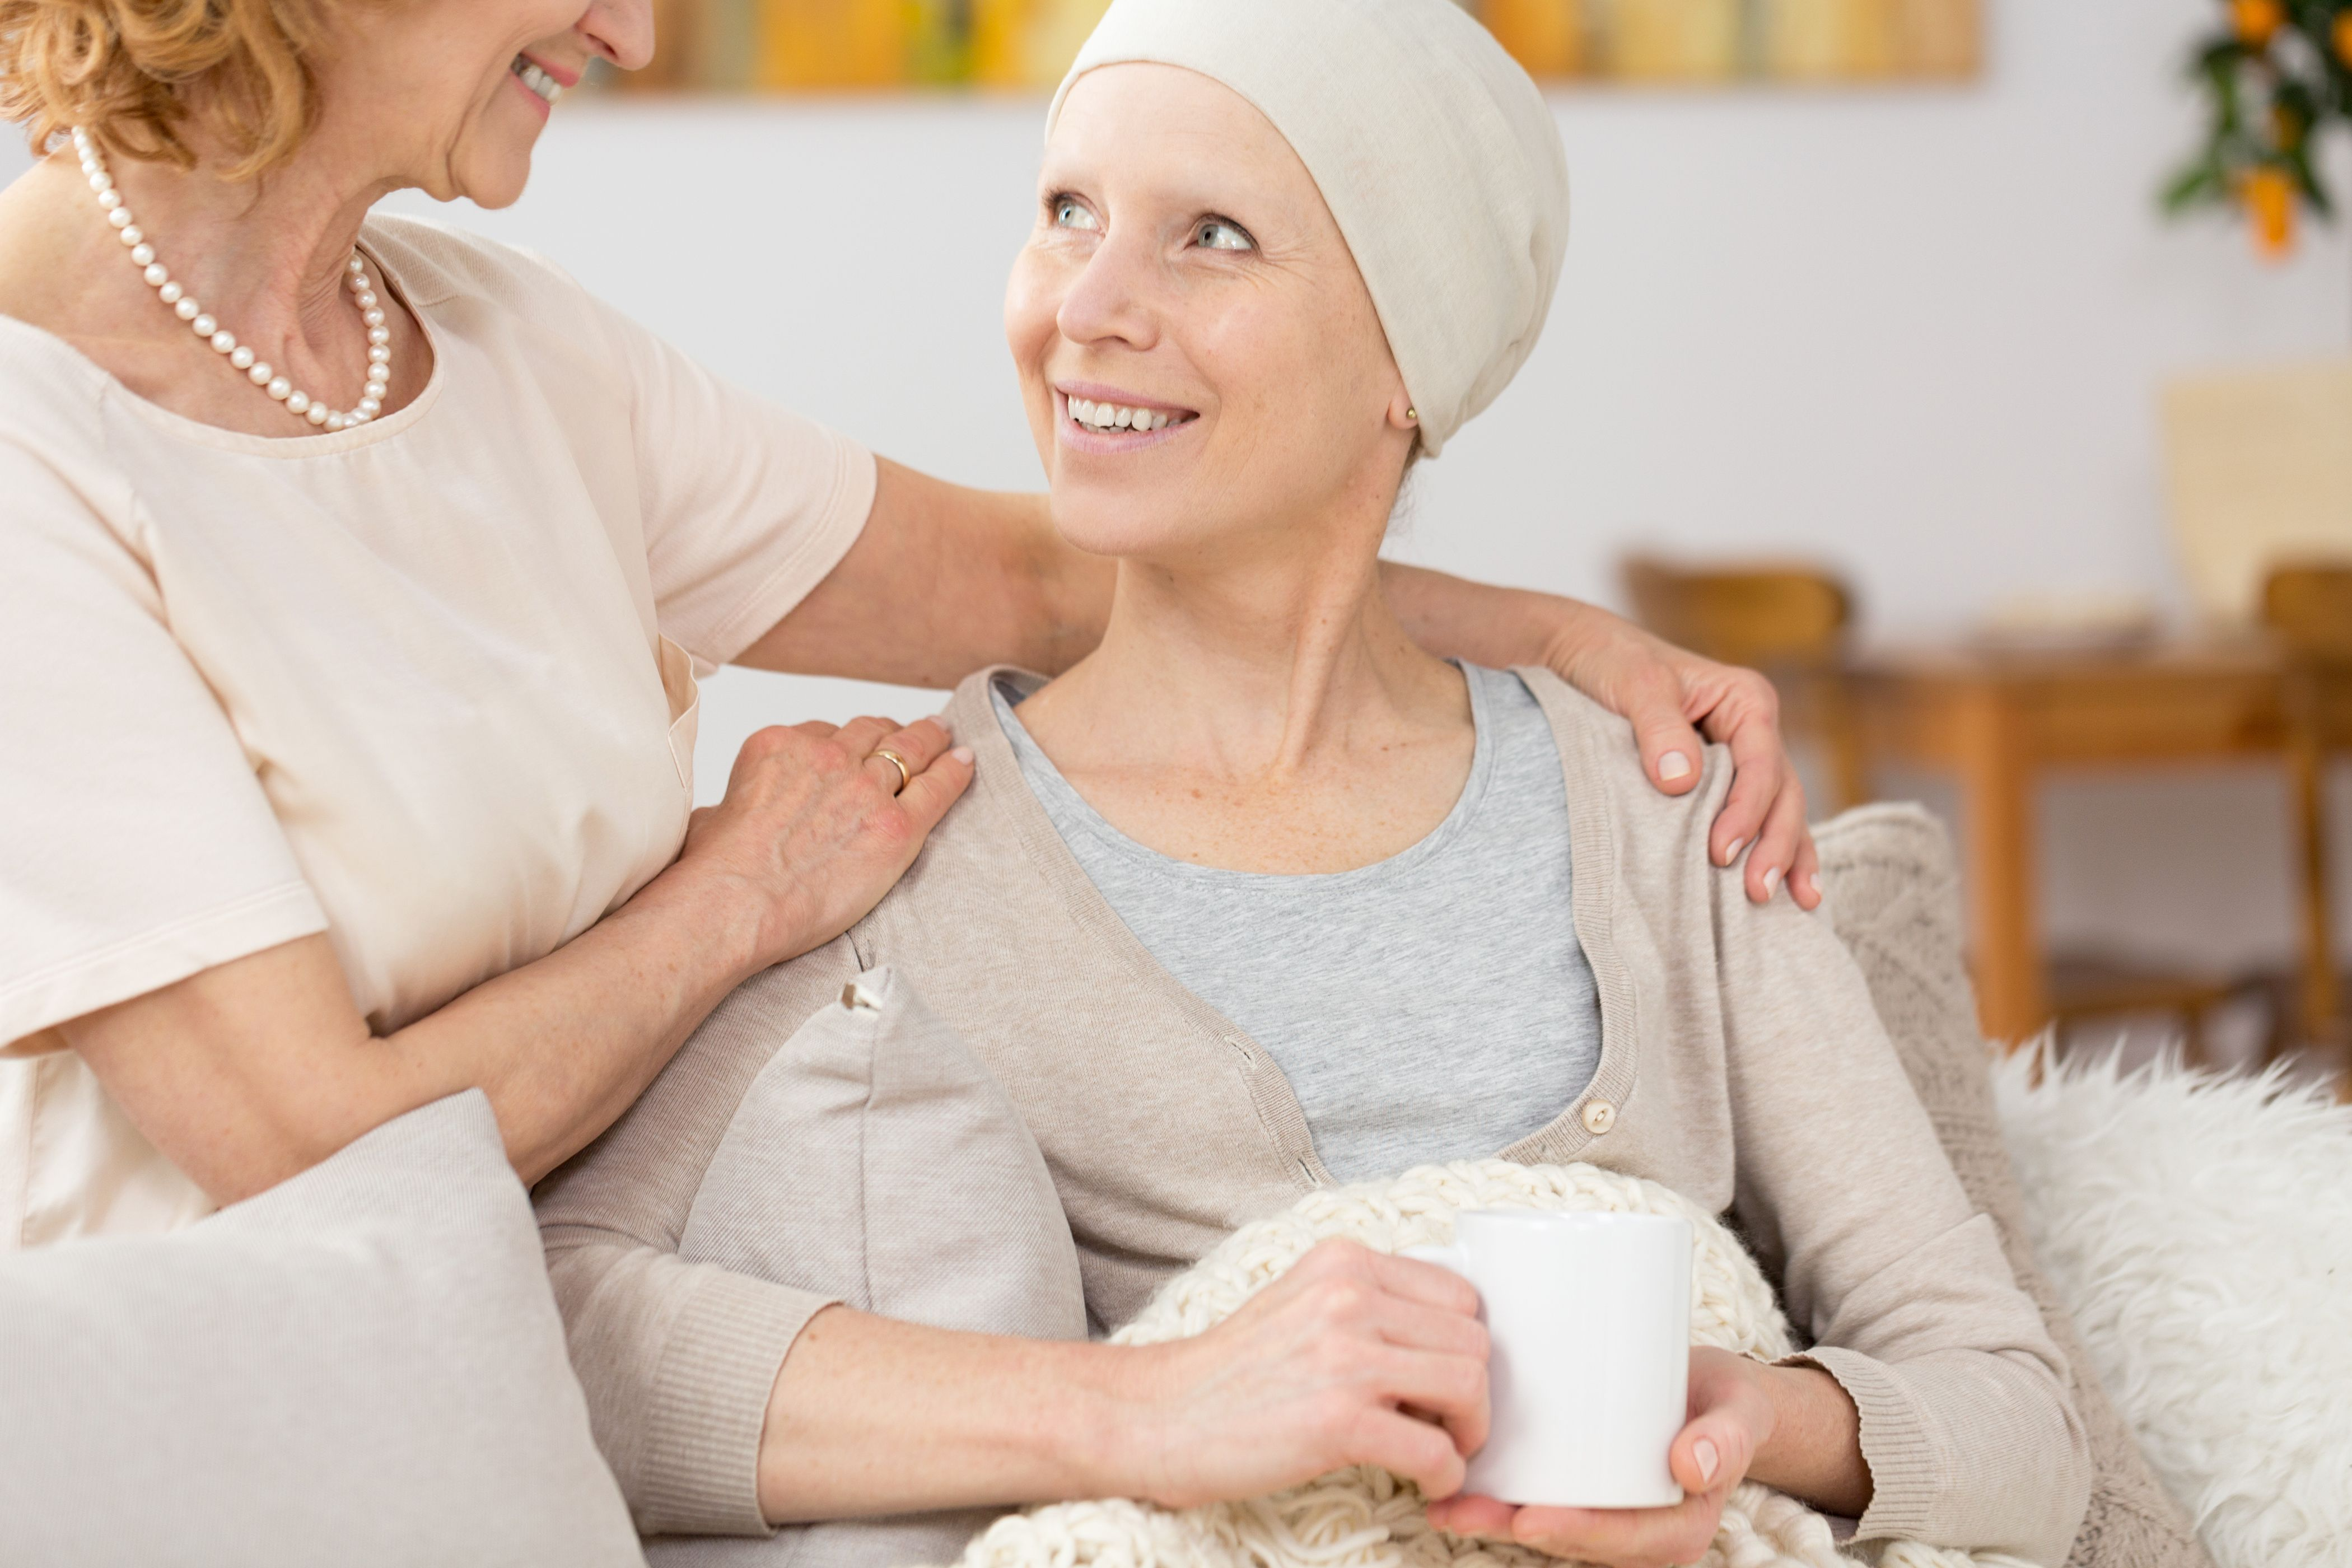 6 Things You Should Say To Someone With Cancer Prevention